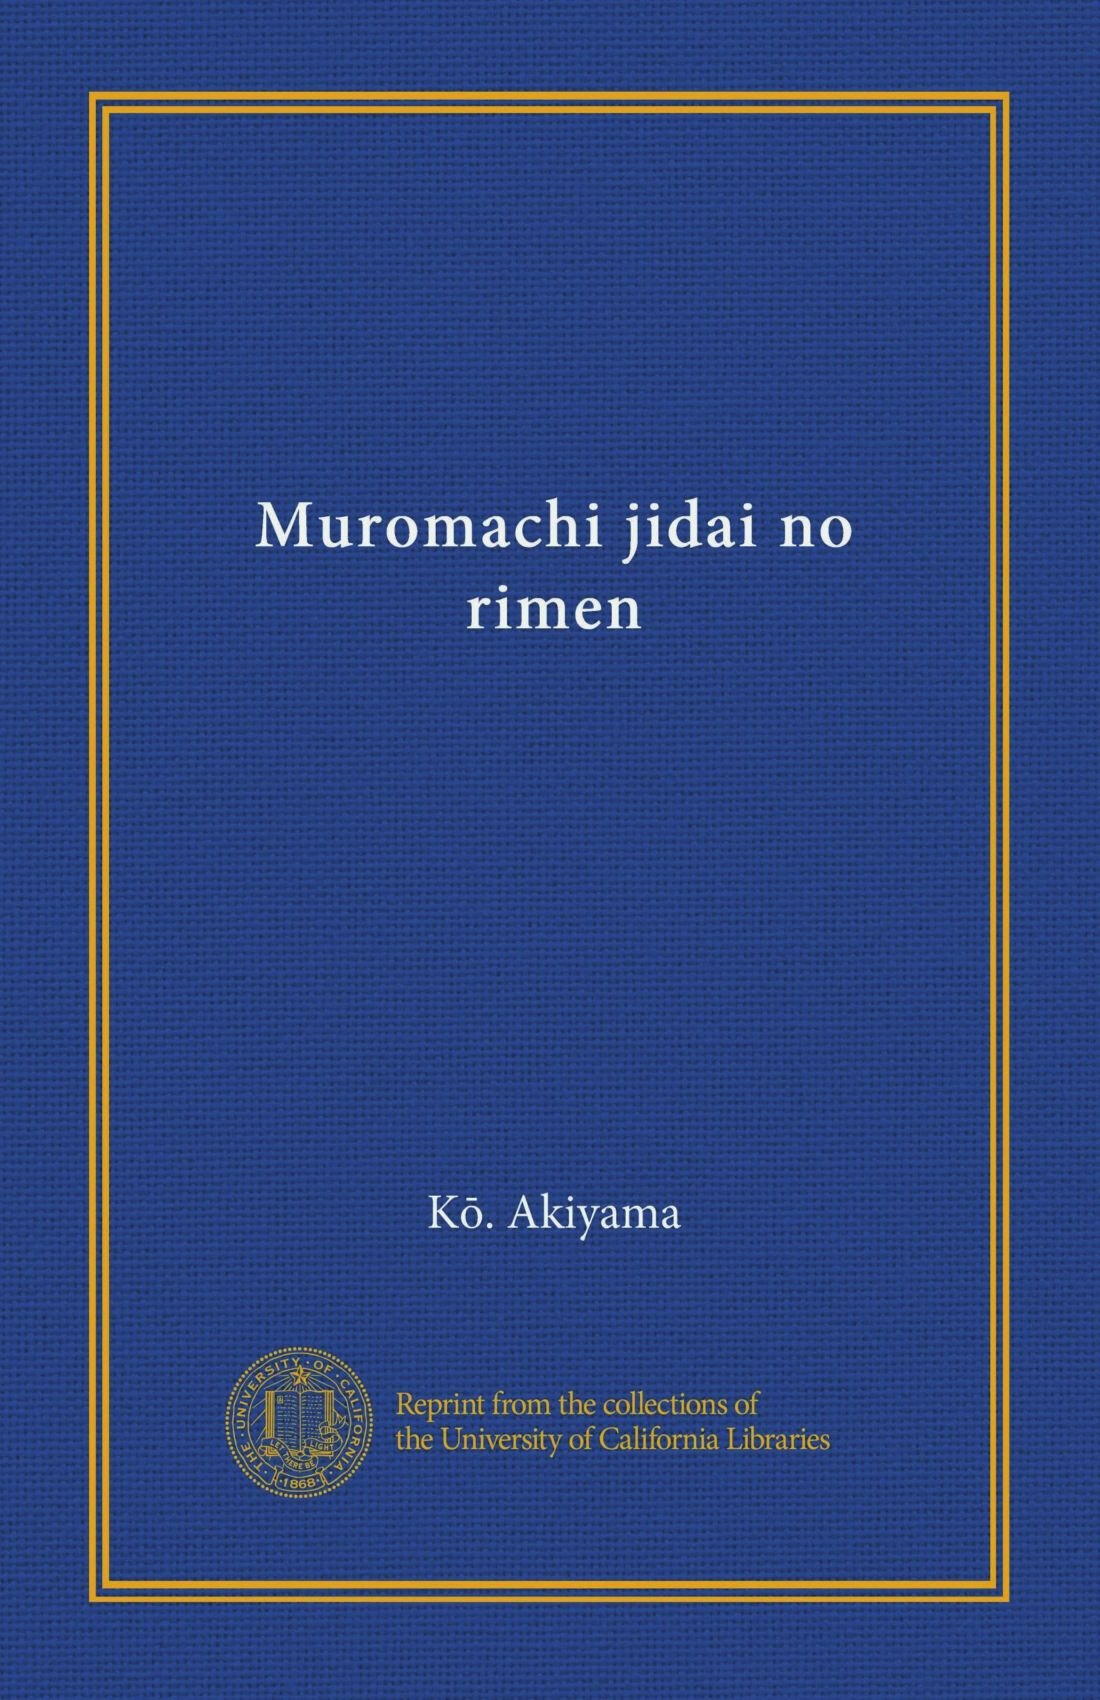 Download Muromachi jidai no rimen (Vol-1) (Japanese Edition) ebook